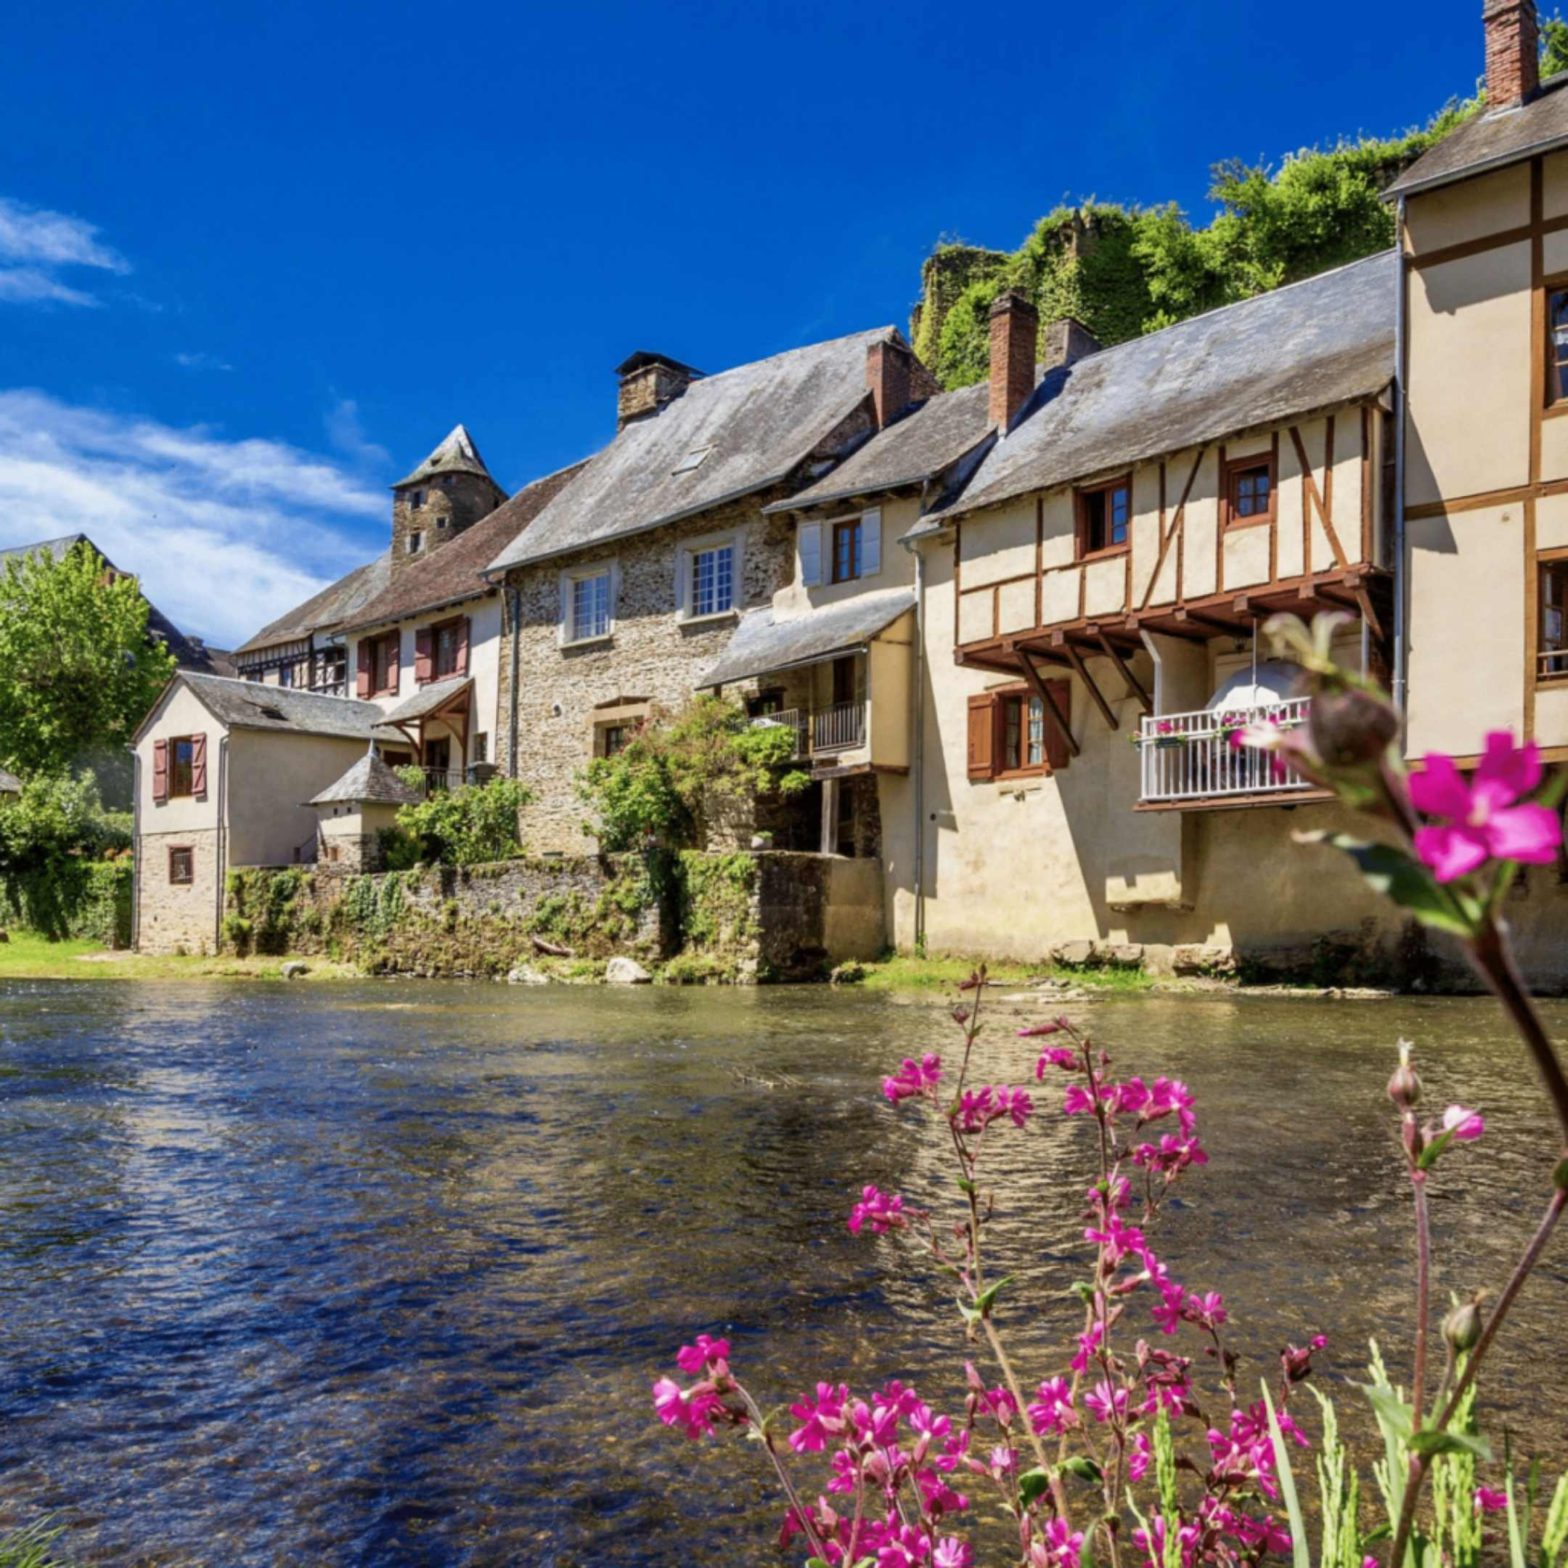 Records d'un mercat medieval inlingua Andorra blogpost beautiful town in France house with flowers next to a river